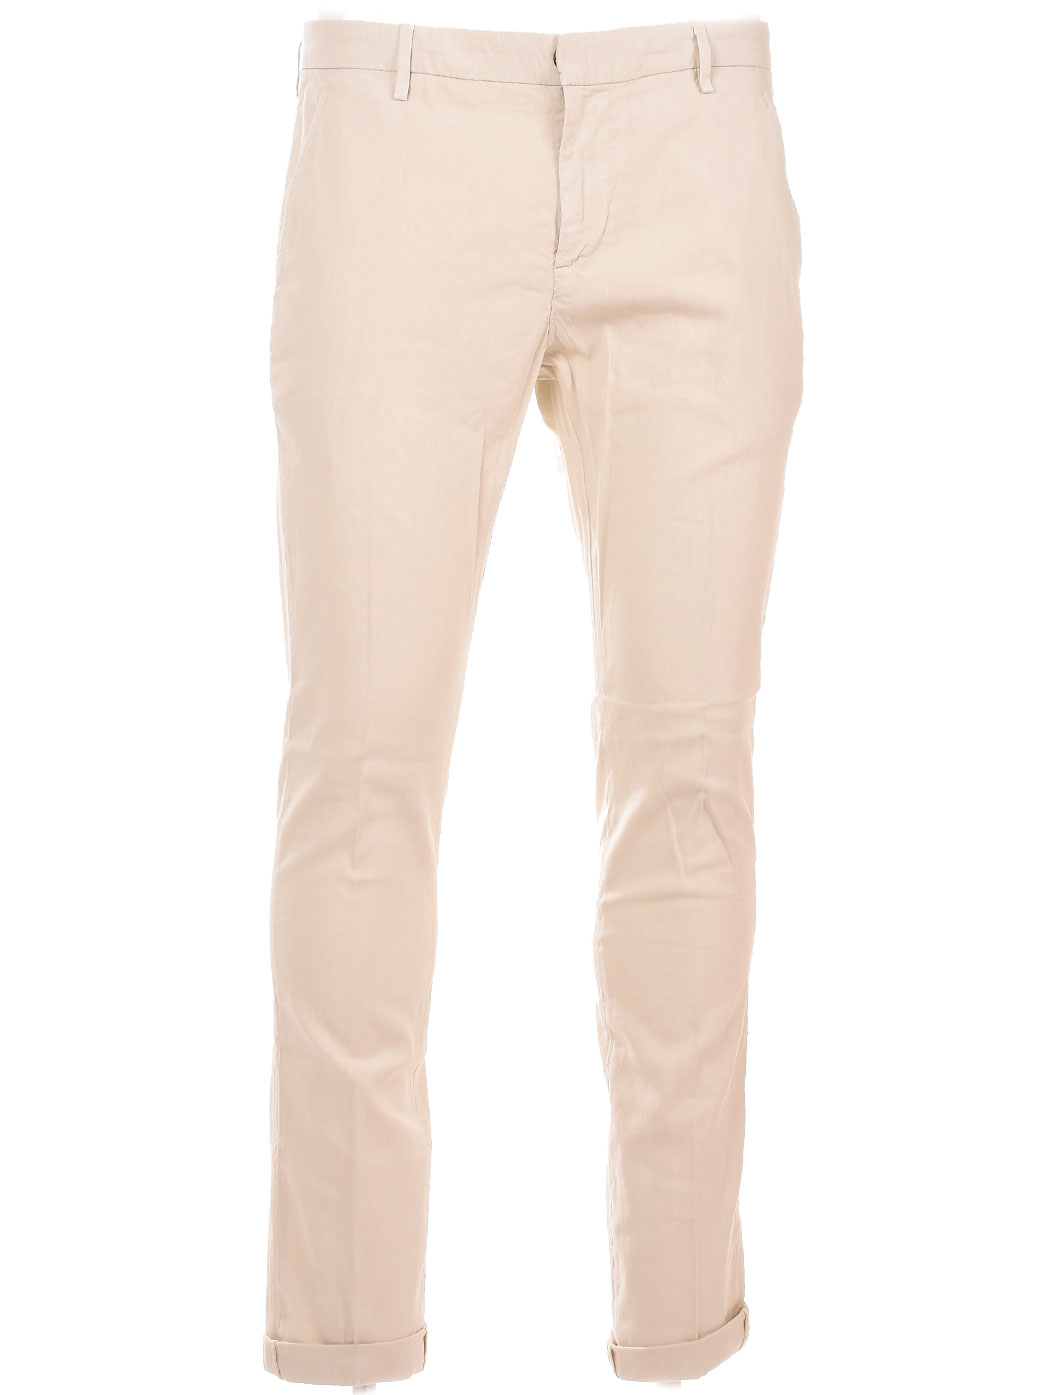 DONDUP UP235 DU005 PANTALONI